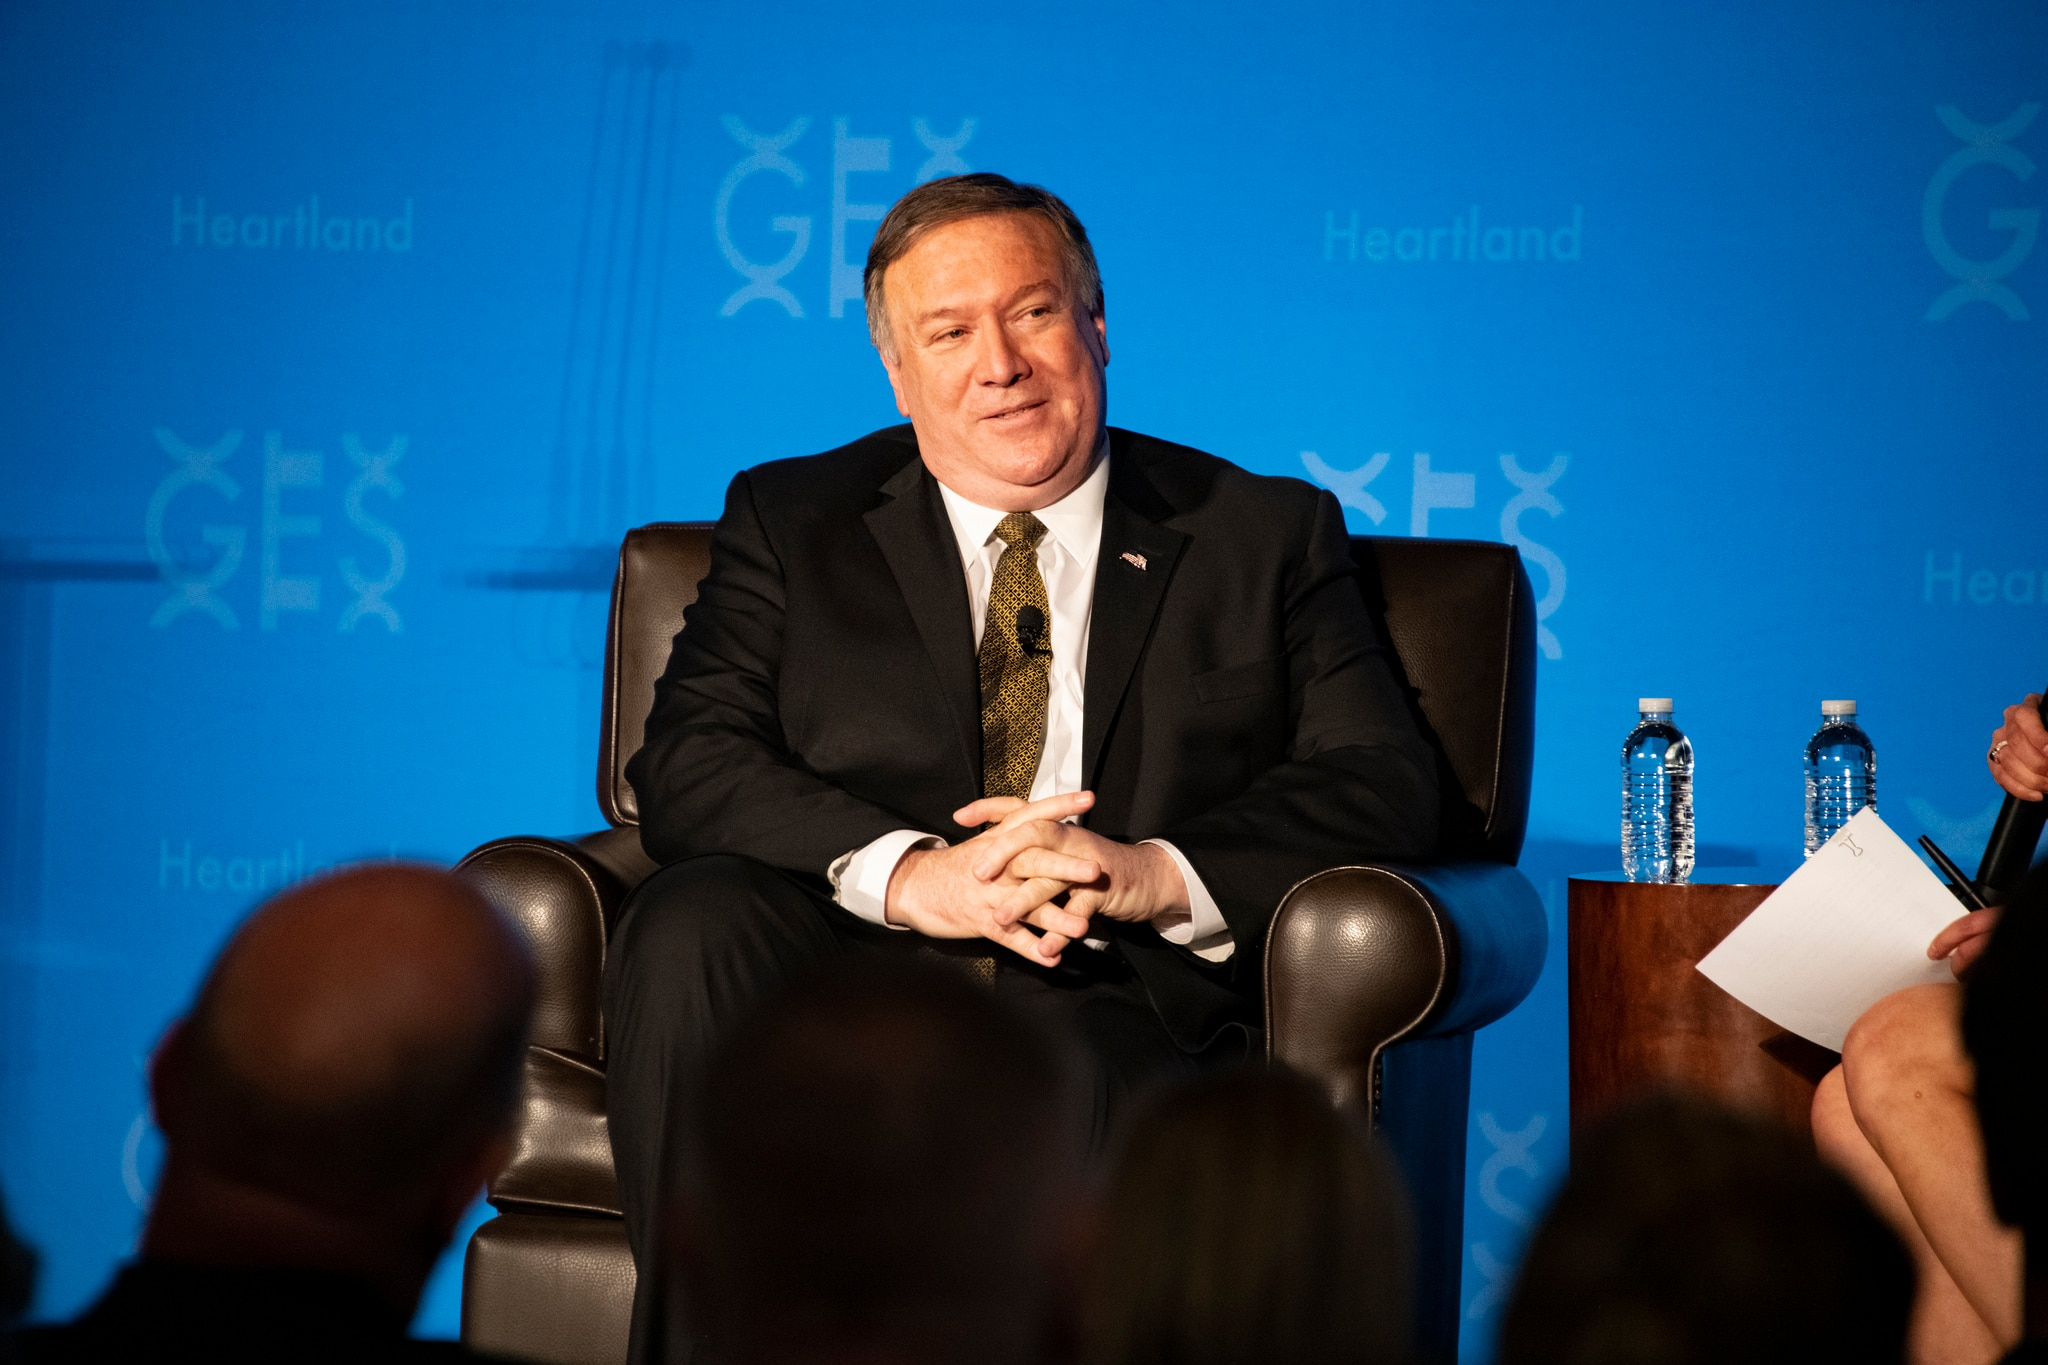 U.S. Secretary of State Michael R. Pompeo delivers the keynote address at the 'Road to GES', hosted by the U.S. Department of State in Overland Park, Kansas on March 18, 2019. [State Department photo by Ron Przysucha/ Public Domain]